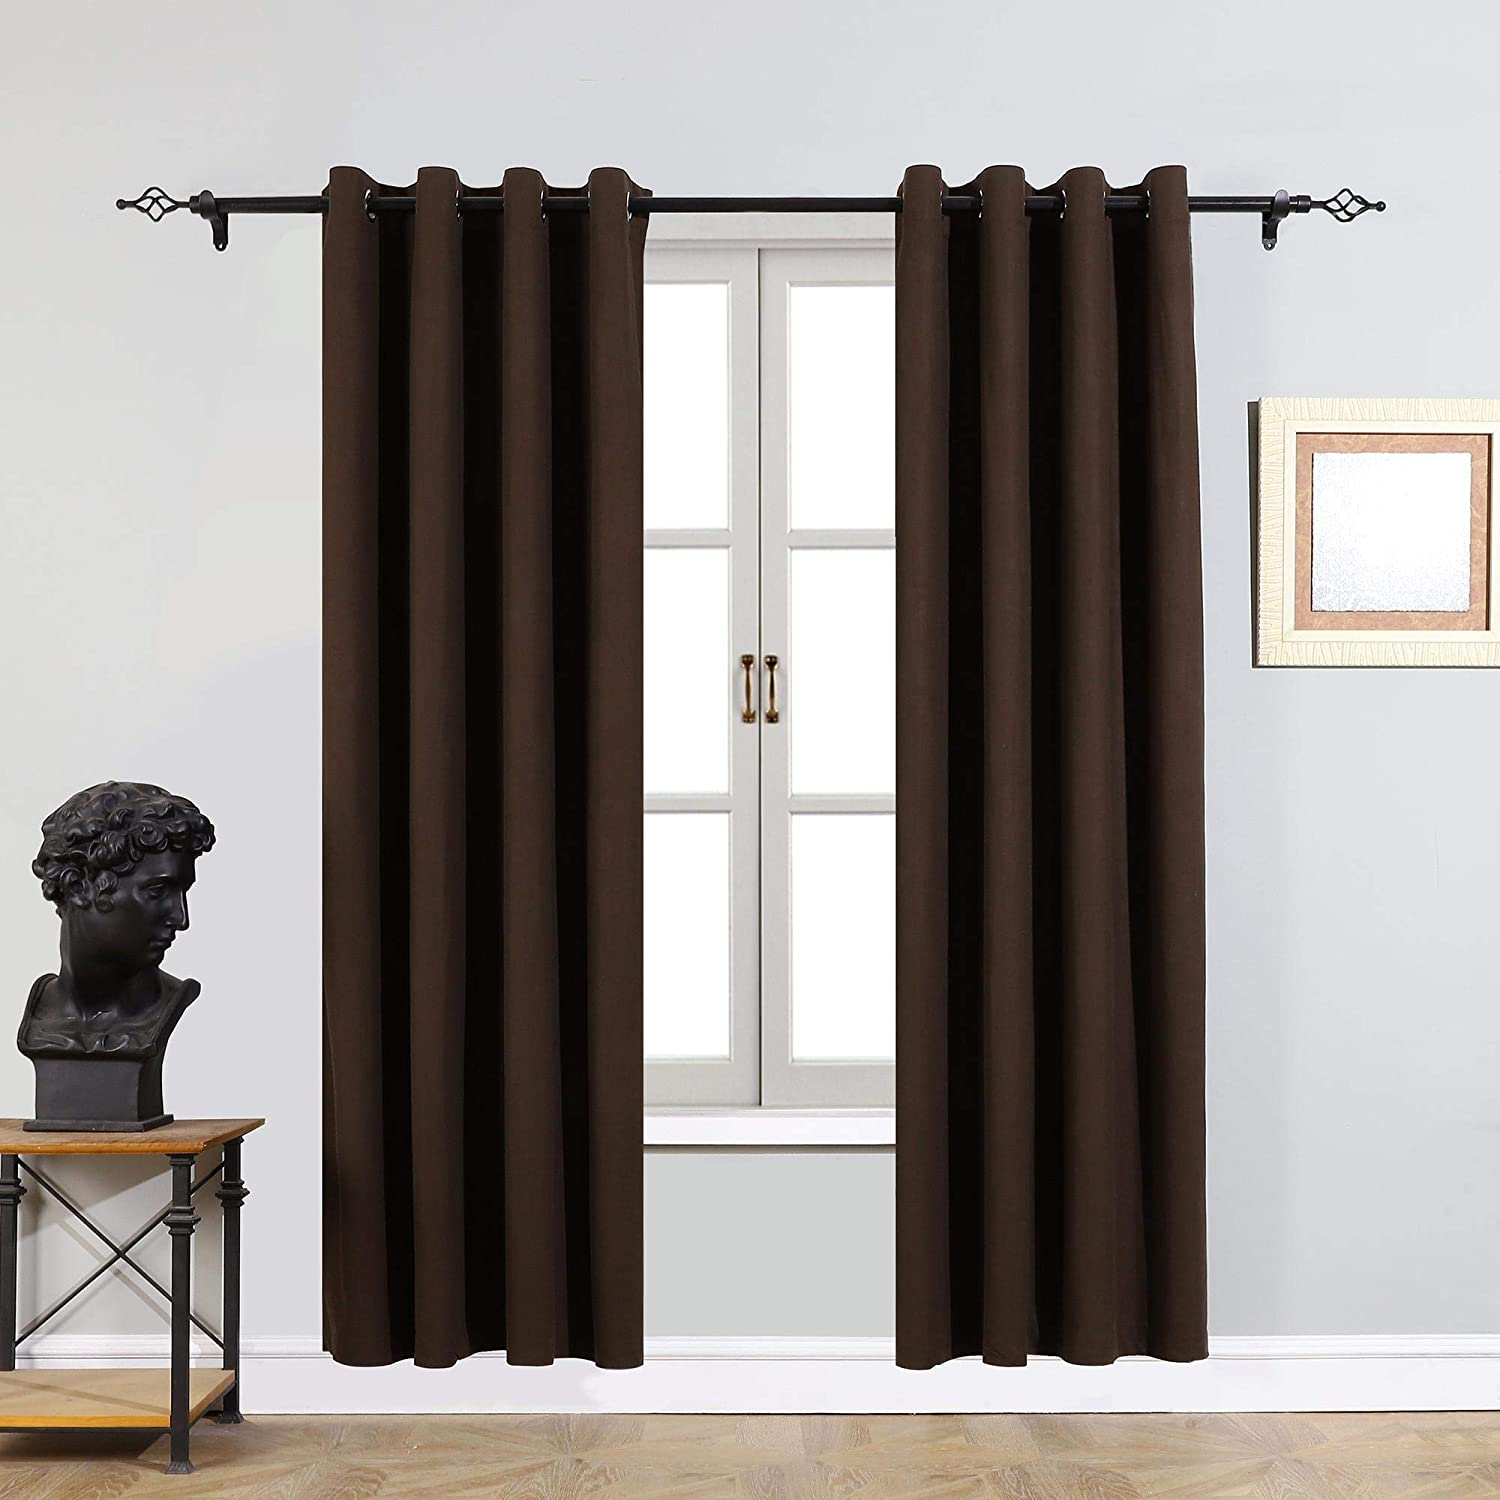 Cherhoo Soft Velvet Curtains,Grommet Top Room Darkening Curtains Window Treatment Drapes for Bedroom and Living Room,Set of 2 Blackout Curtain Panels(Taupe,W52 × L84 Inch)